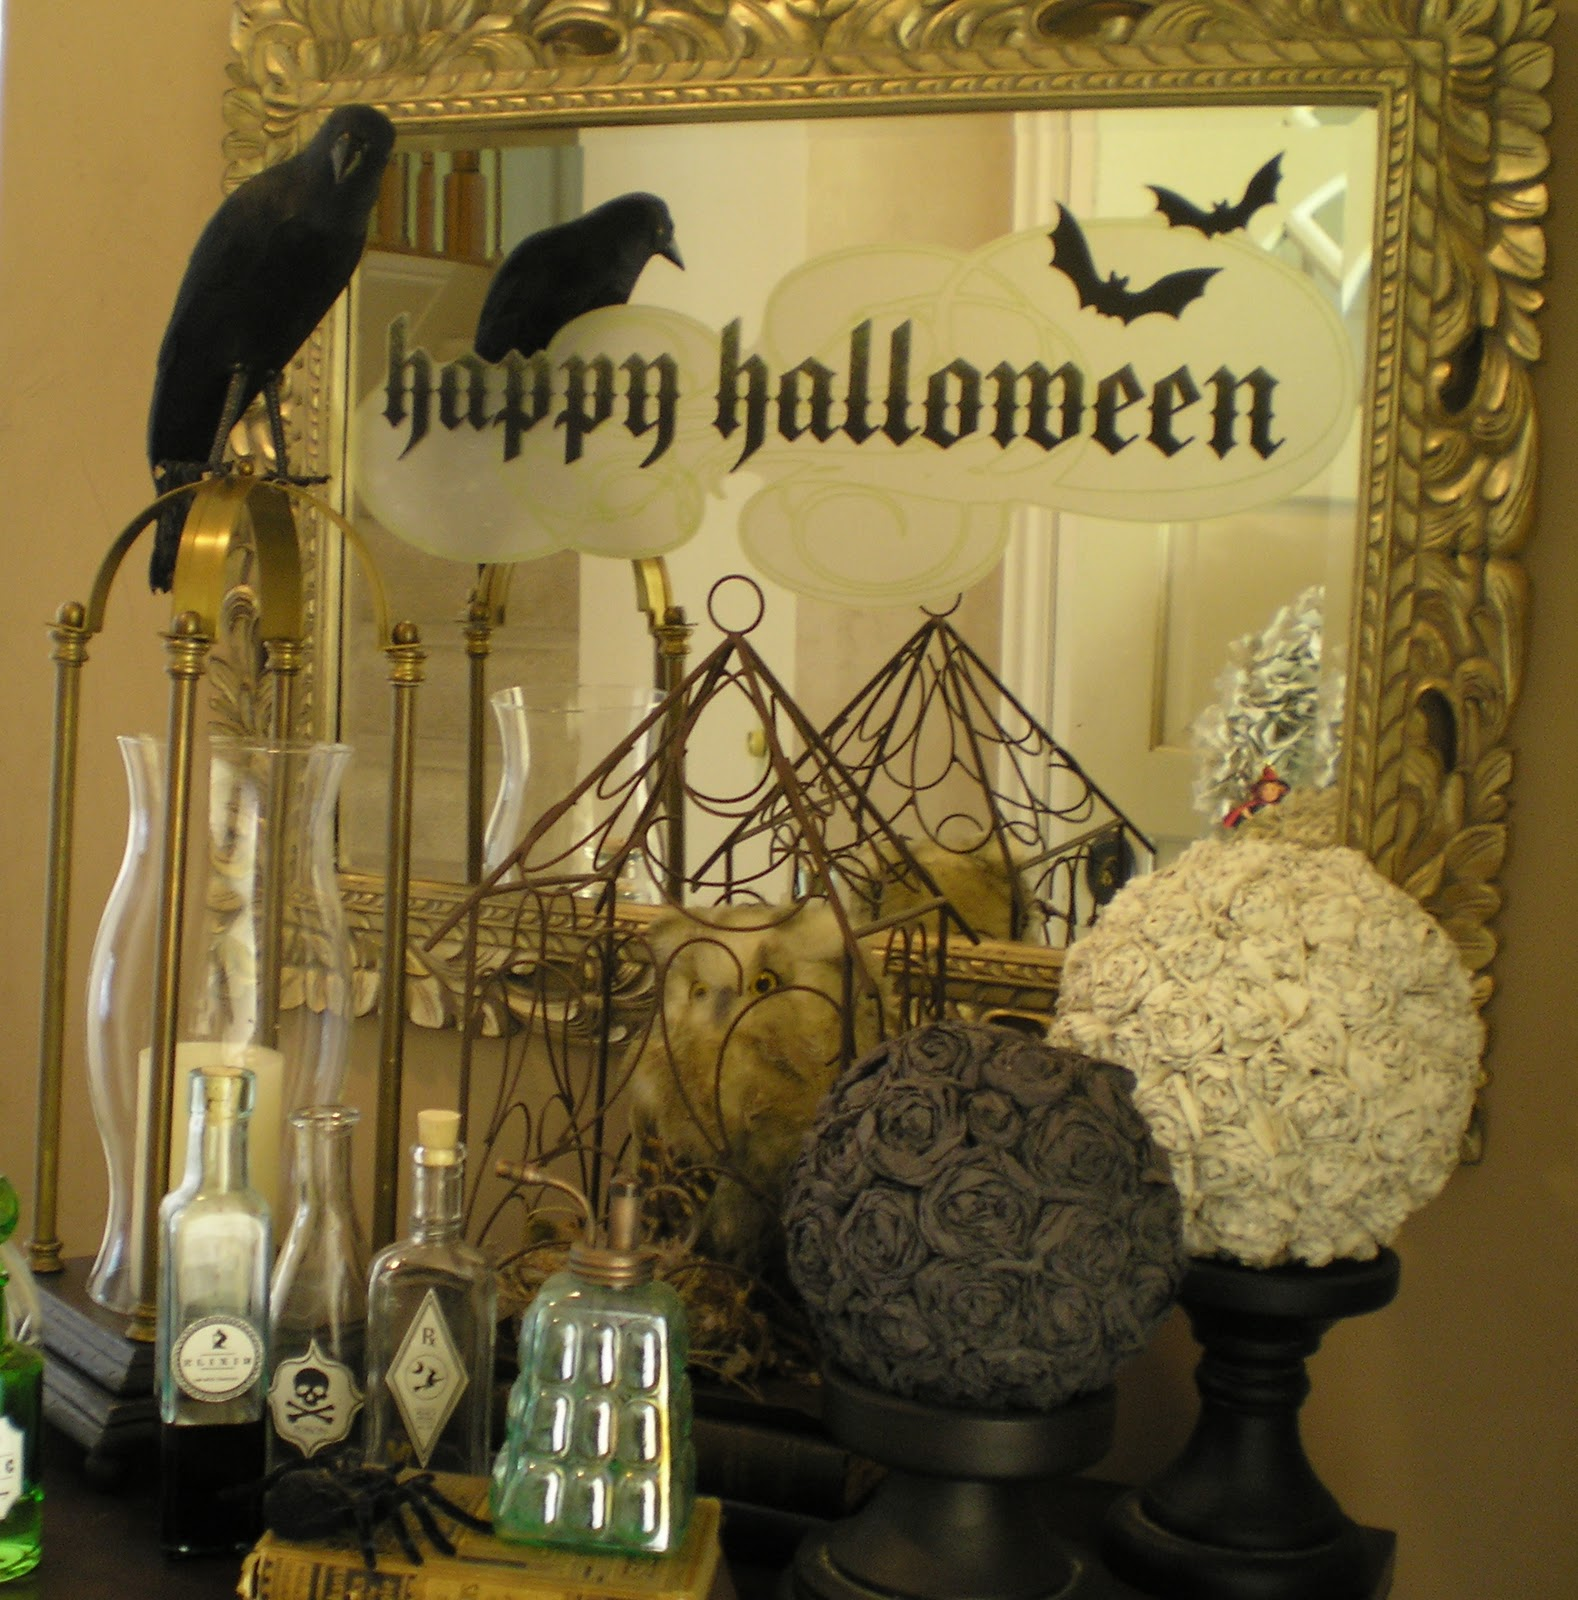 Home Decorating Ideas For Halloween: Honey I'm Home: Only 21 Days 'Til Halloween